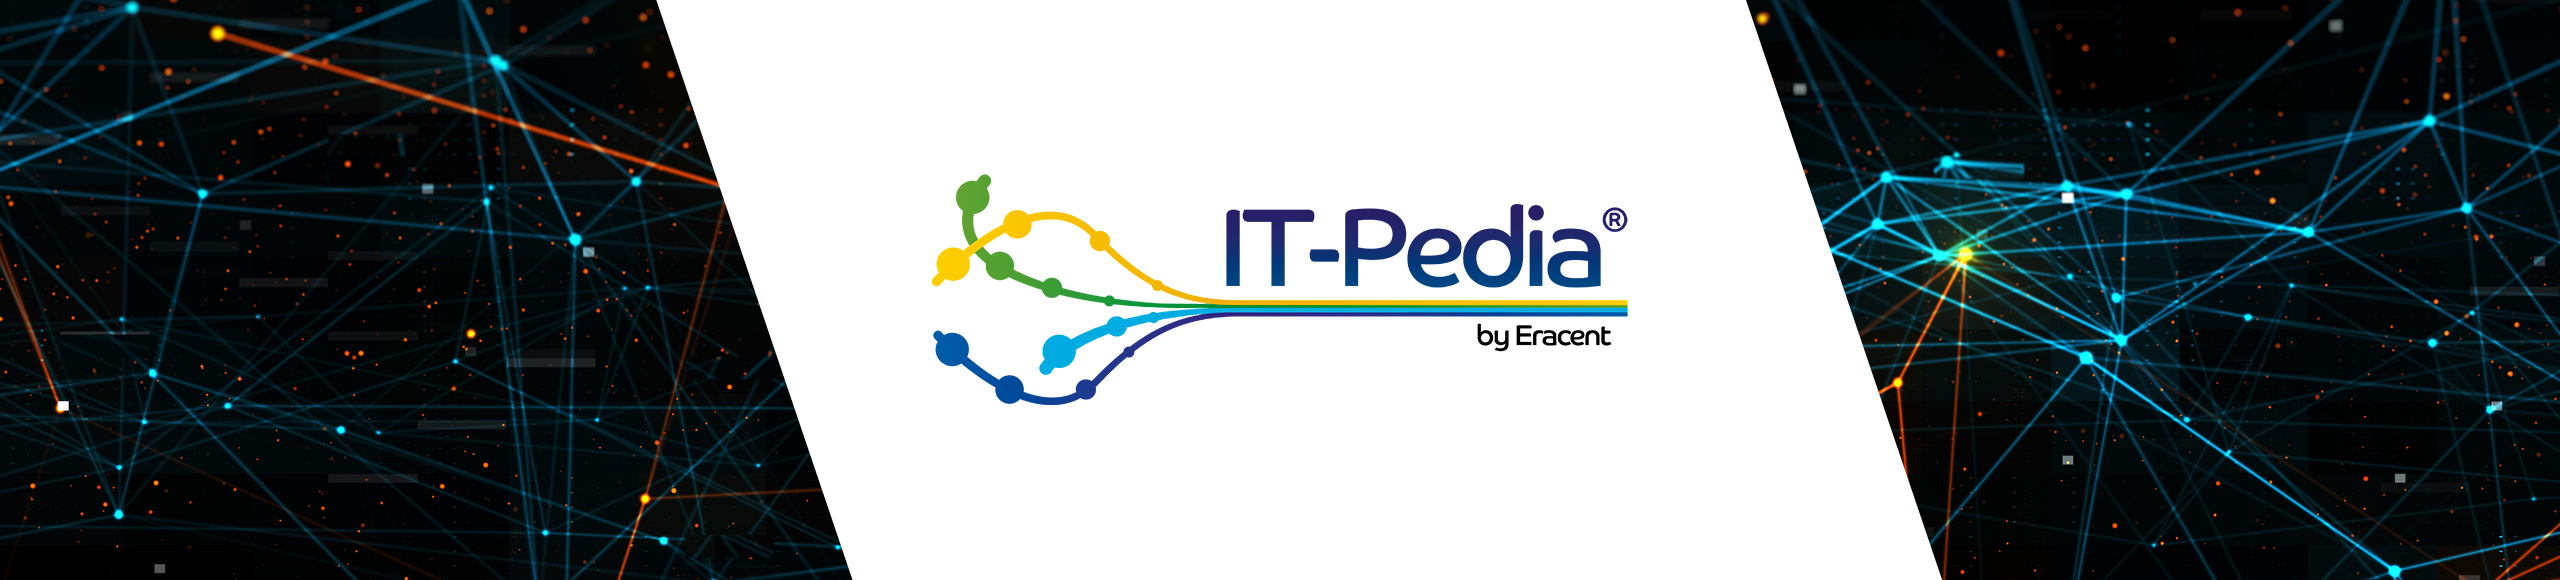 IT-Pedia banner (large)